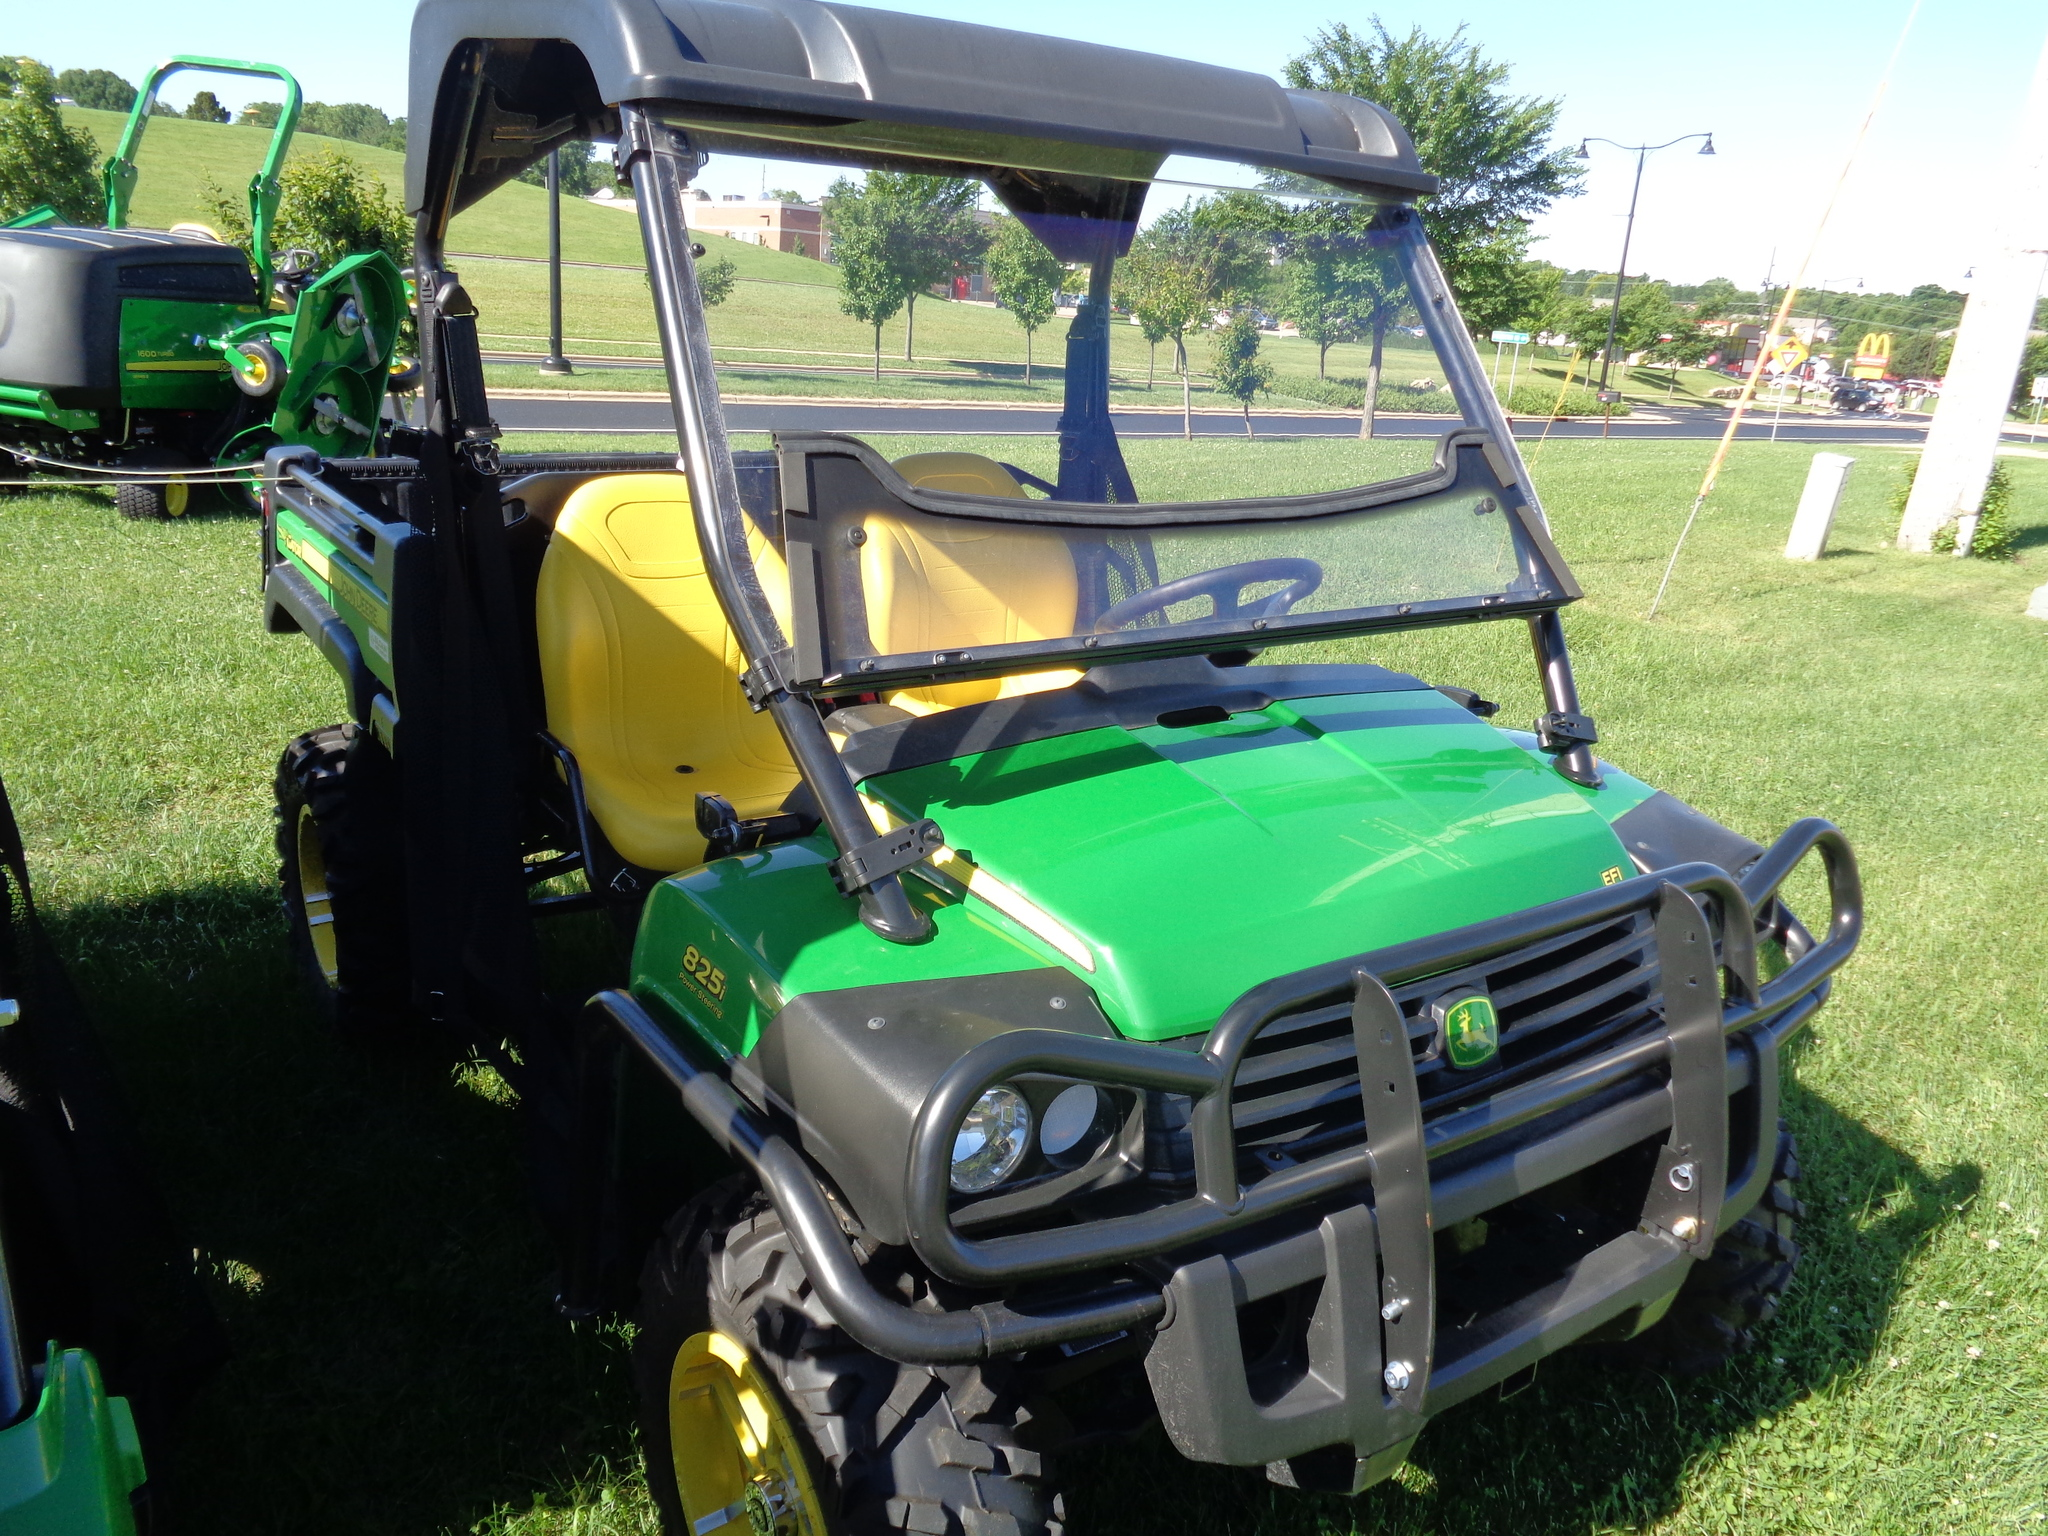 john deere xuv 825i atvs gators for sale 47409. Black Bedroom Furniture Sets. Home Design Ideas